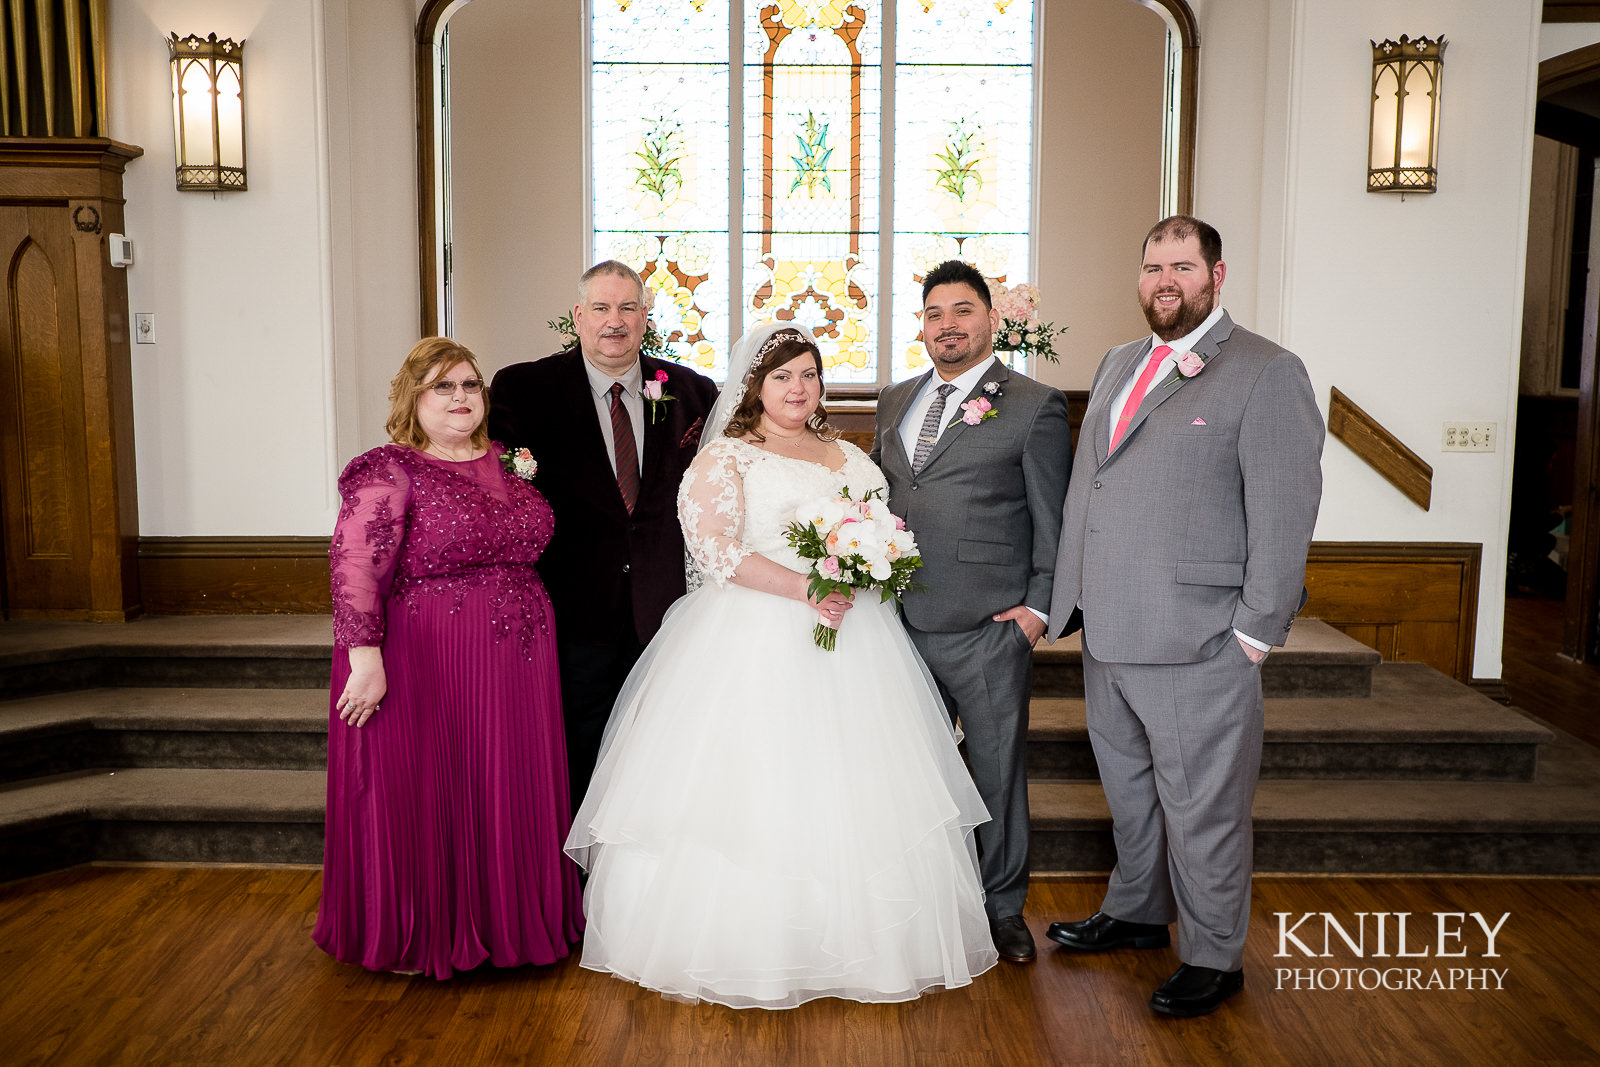 049 - Westminster Chapel - Rochester NY wedding photo - Kniley Photography.jpg